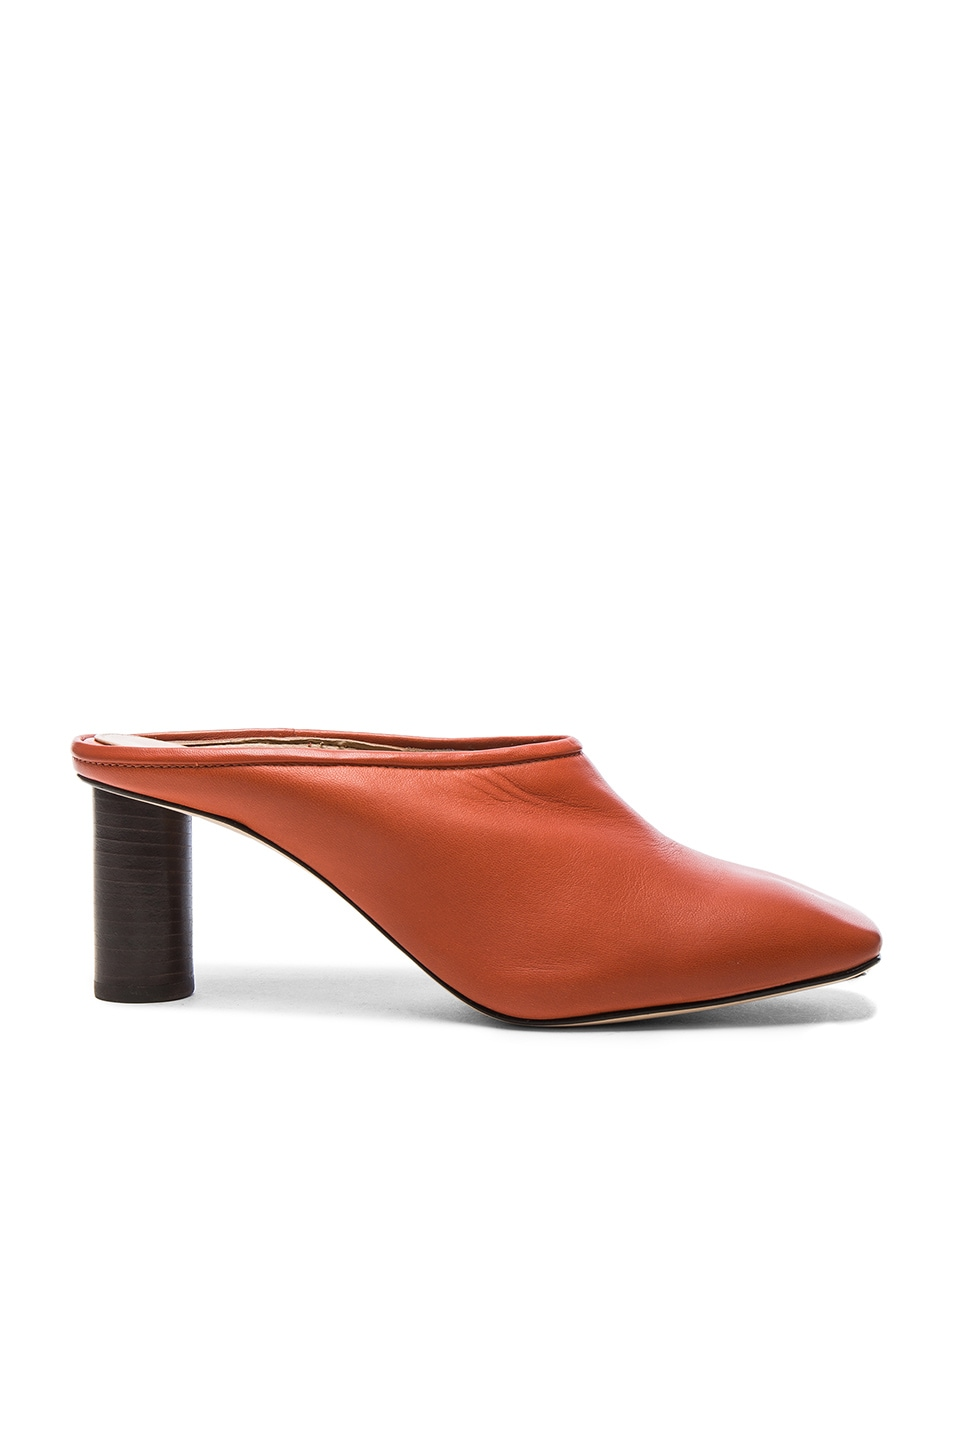 Image 1 of Helmut Lang Square Toe Leather Mules in Sard